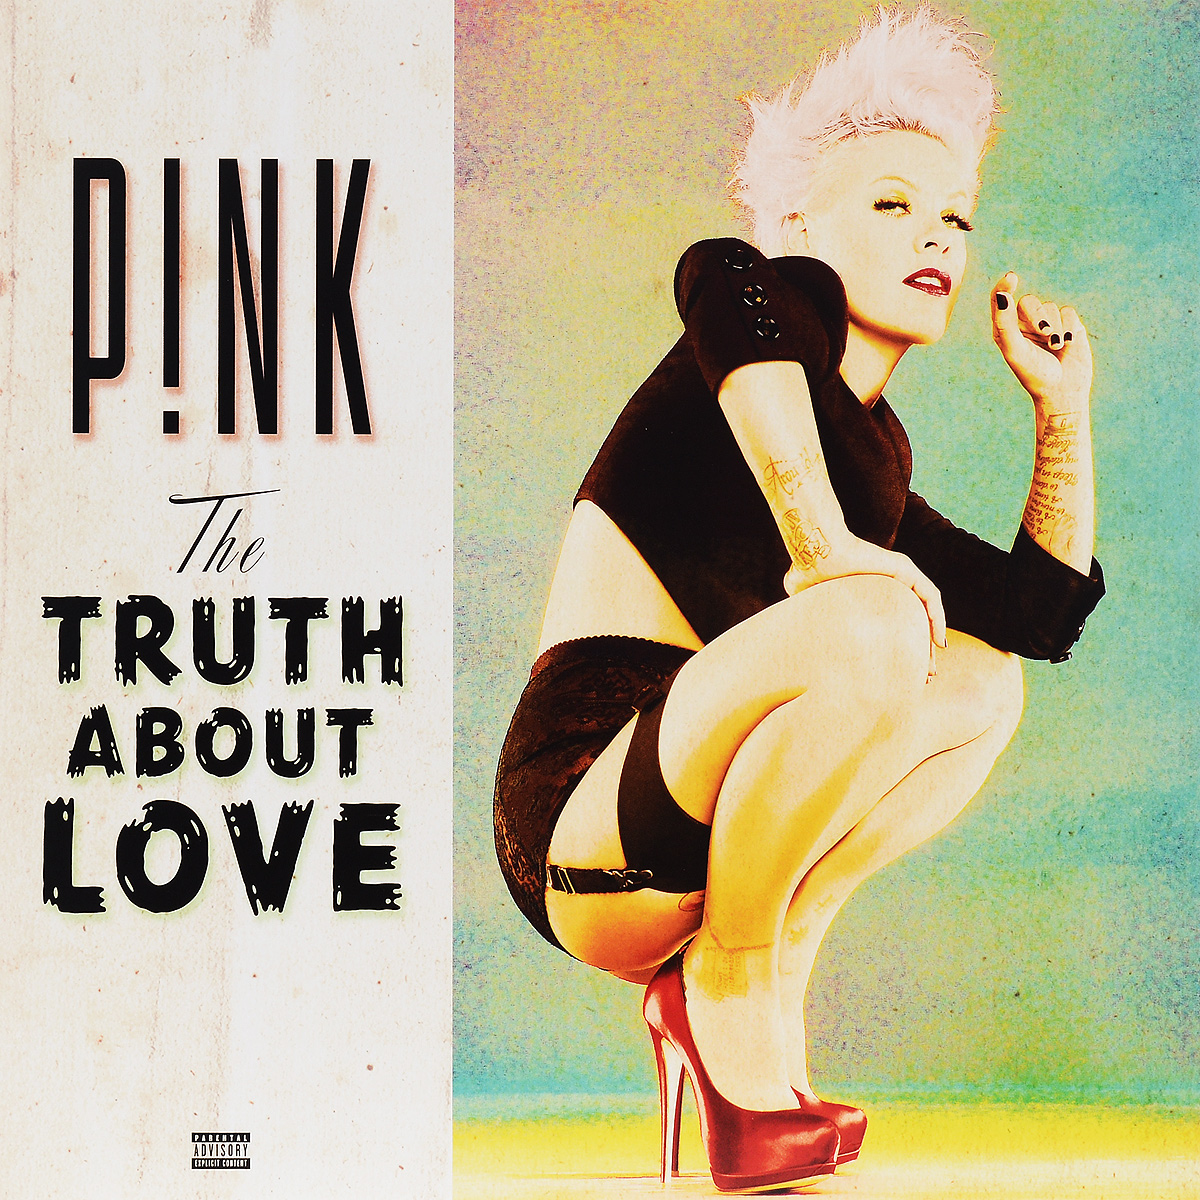 Pink P!nk. The Truth About Love (2 LP)